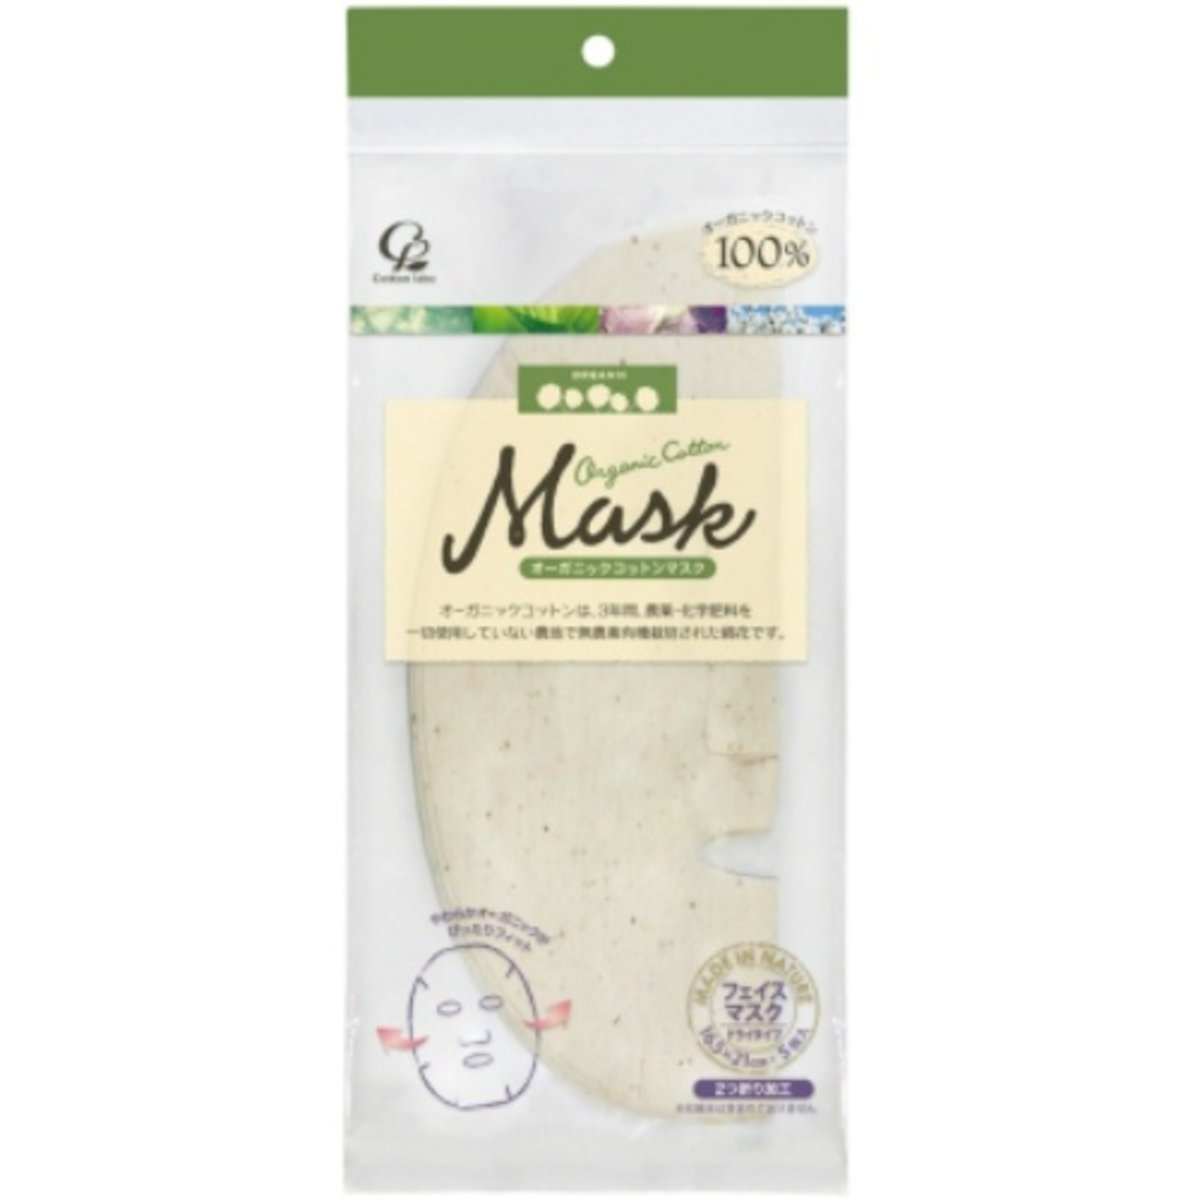 Laboratory Organic Cotton Mask 5pcs